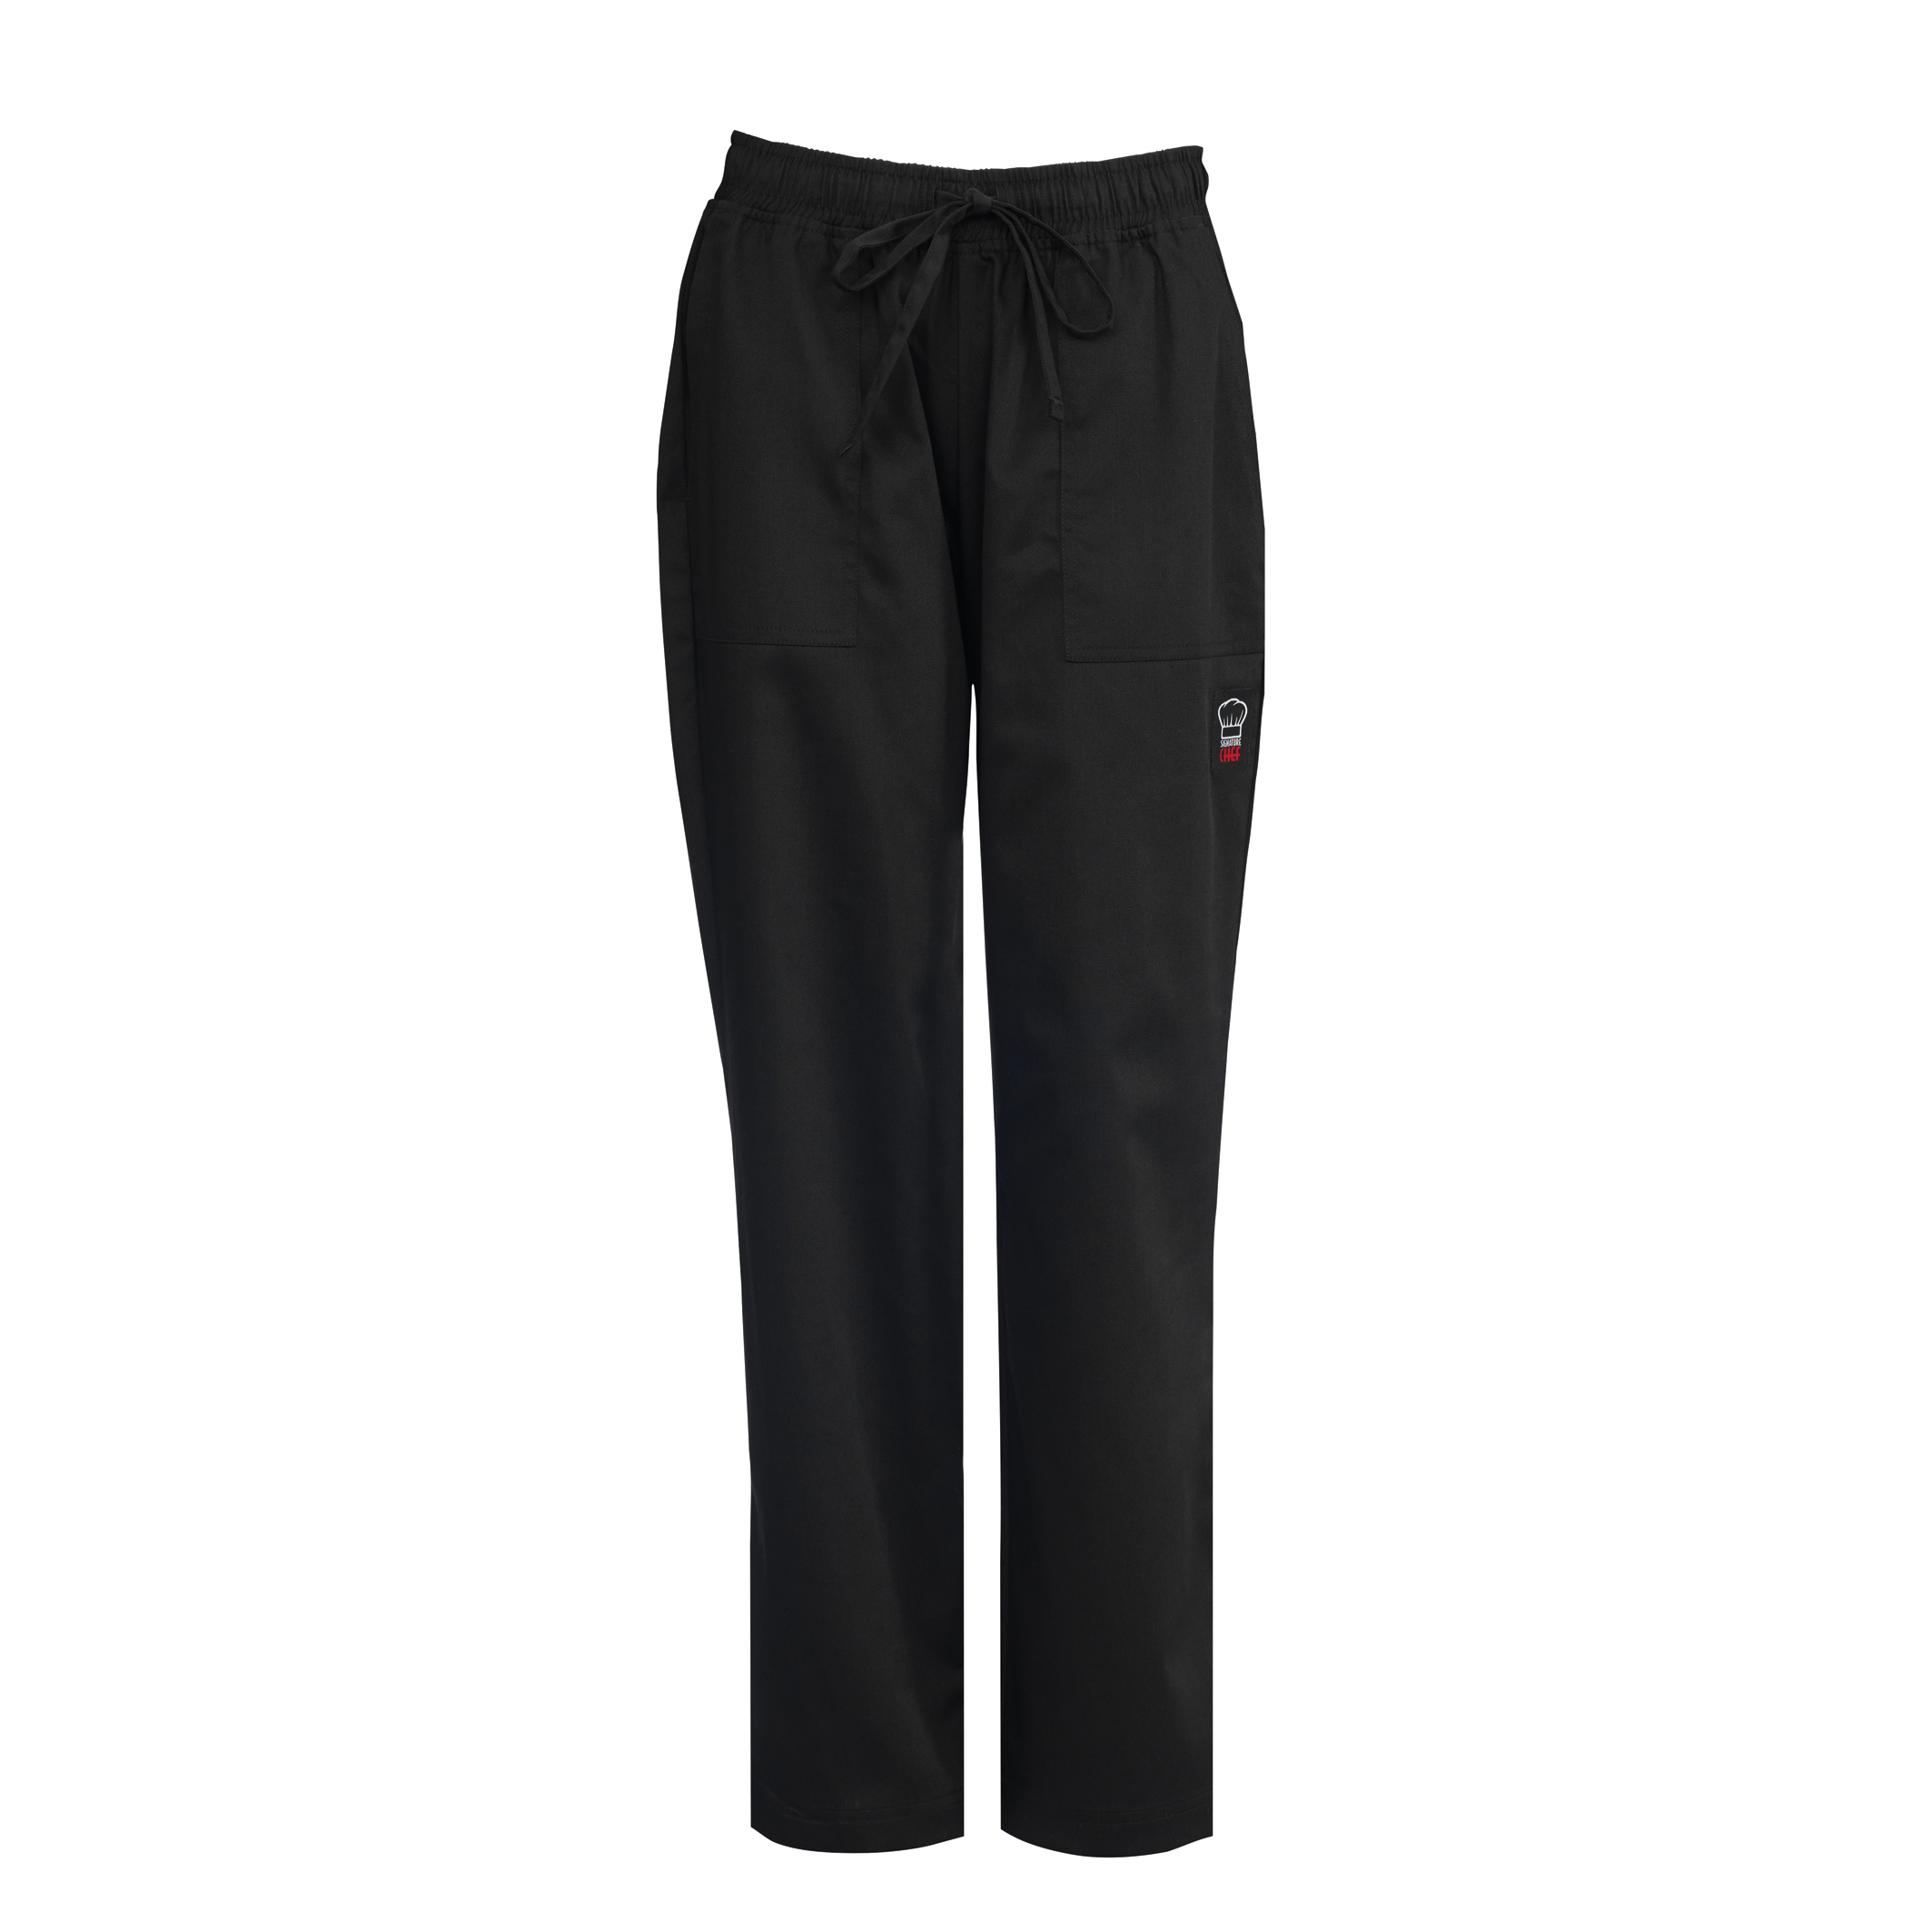 Winco UNF-8KS chef's pants